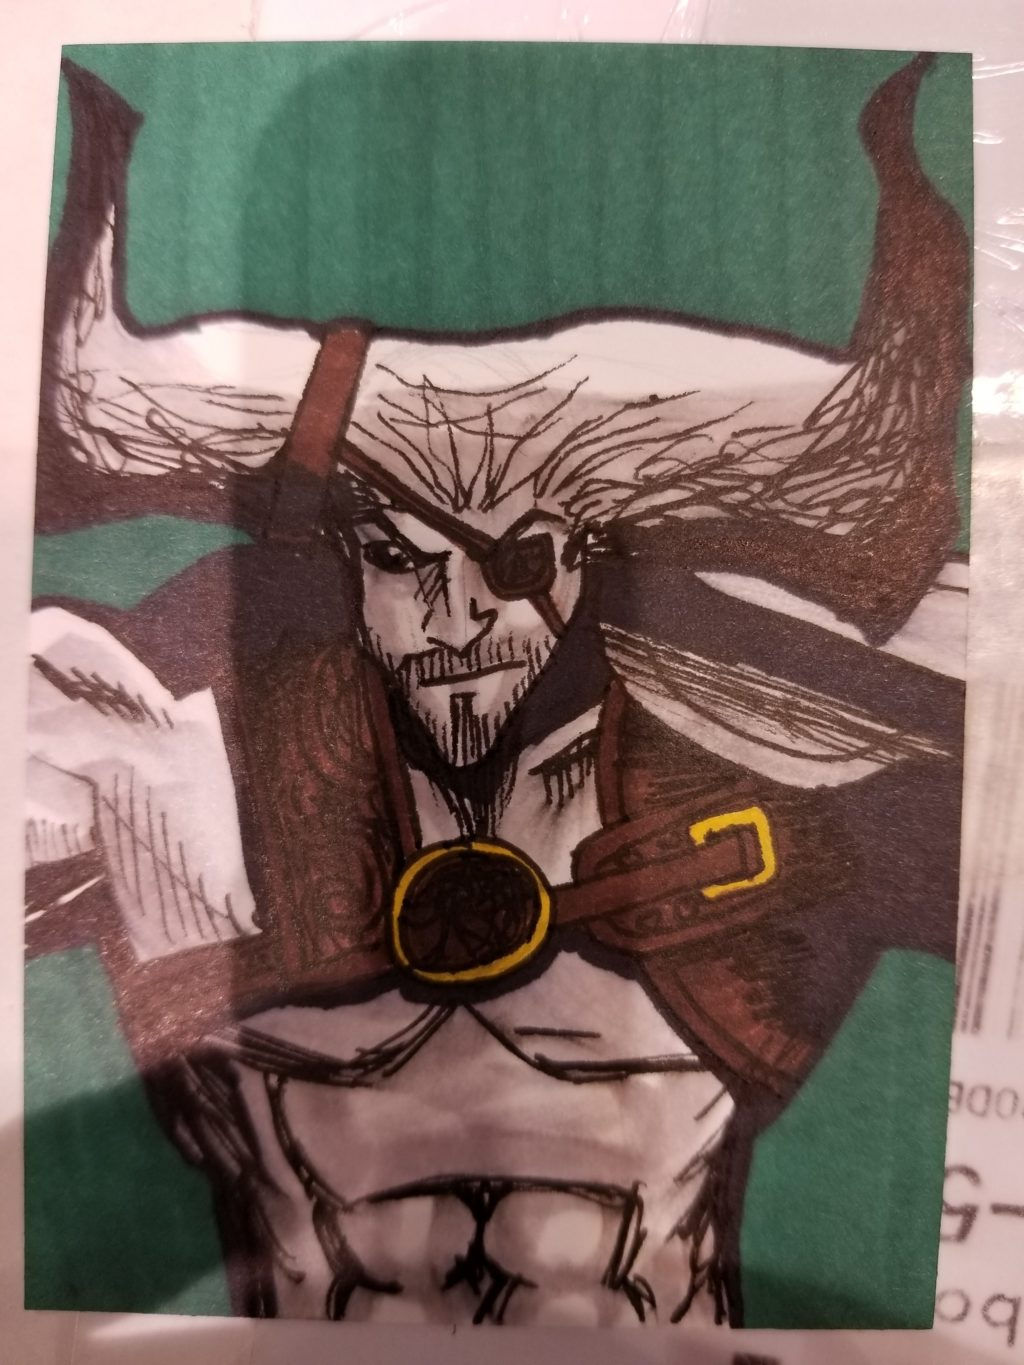 Commission sketchcard of Iron Bull from Dragon Age